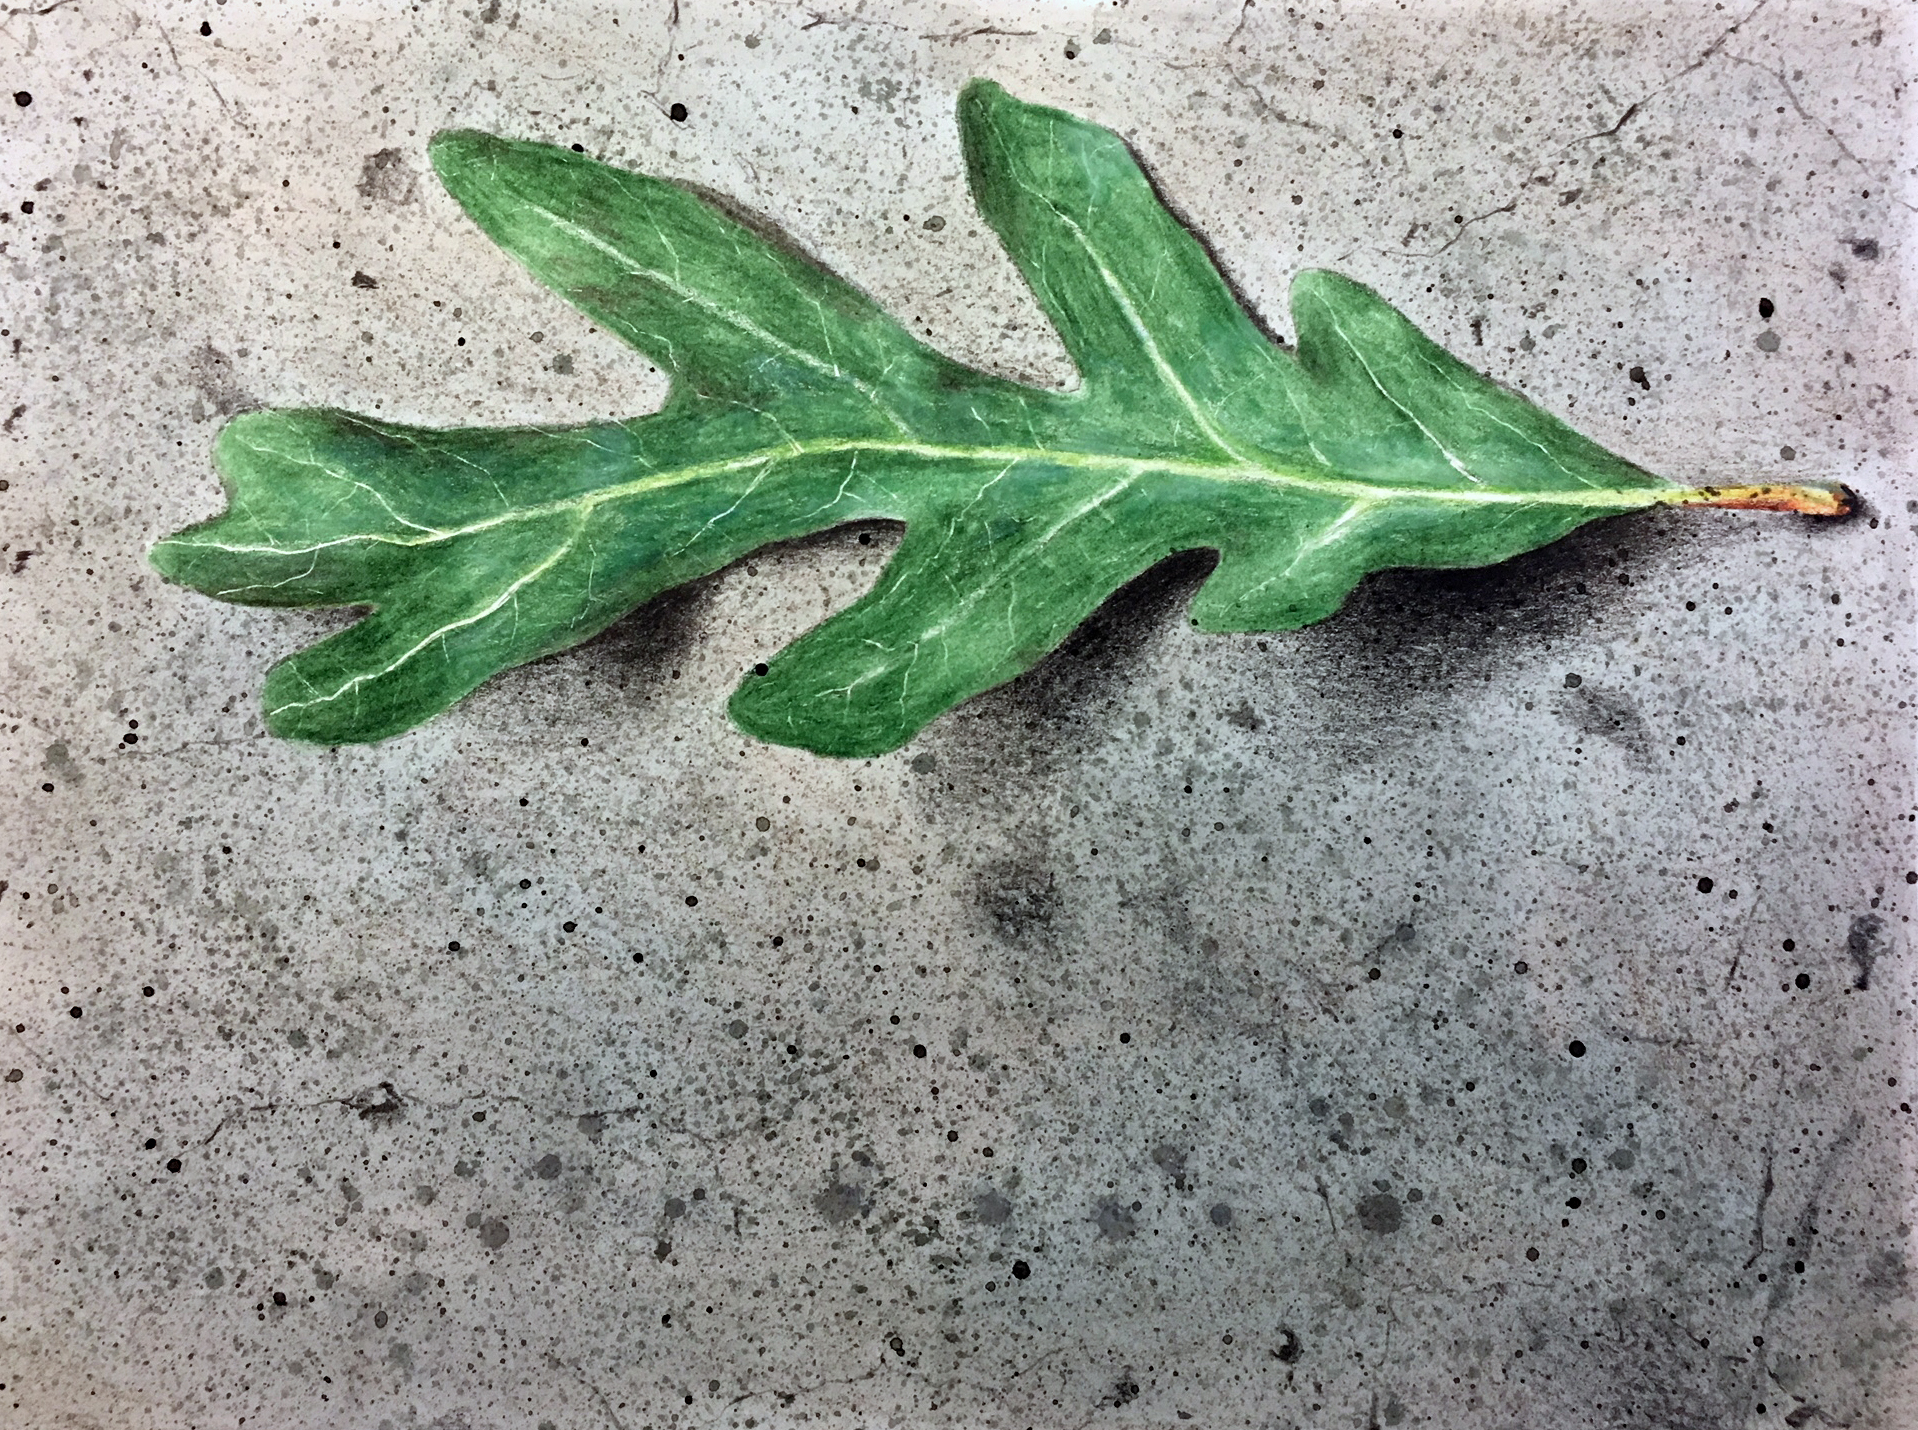 Using a colorless blender on the colored pencil applications on the leaf